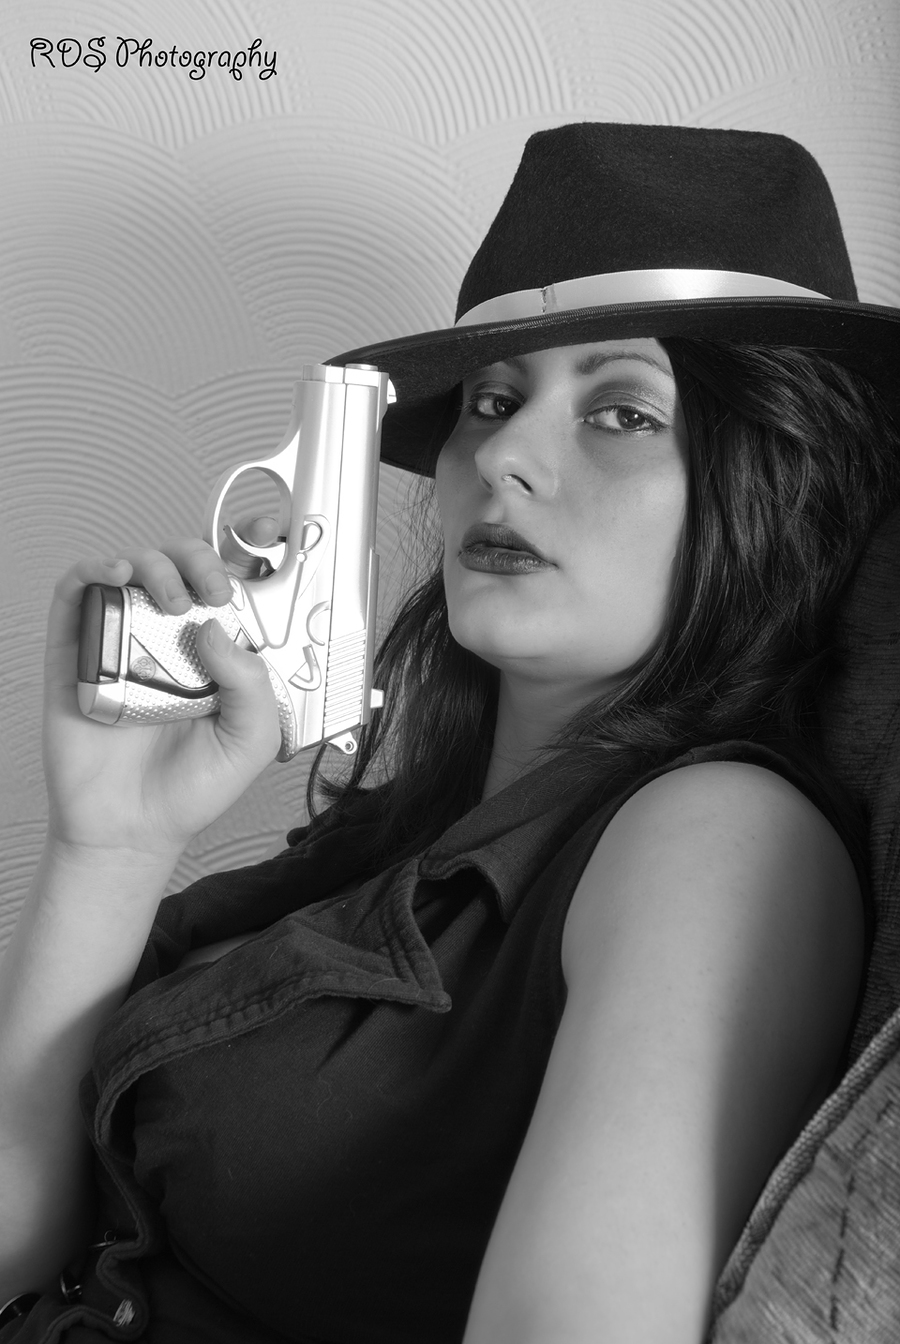 Gangster chic / Photography by RDS Photography / Uploaded 22nd January 2013 @ 11:35 PM